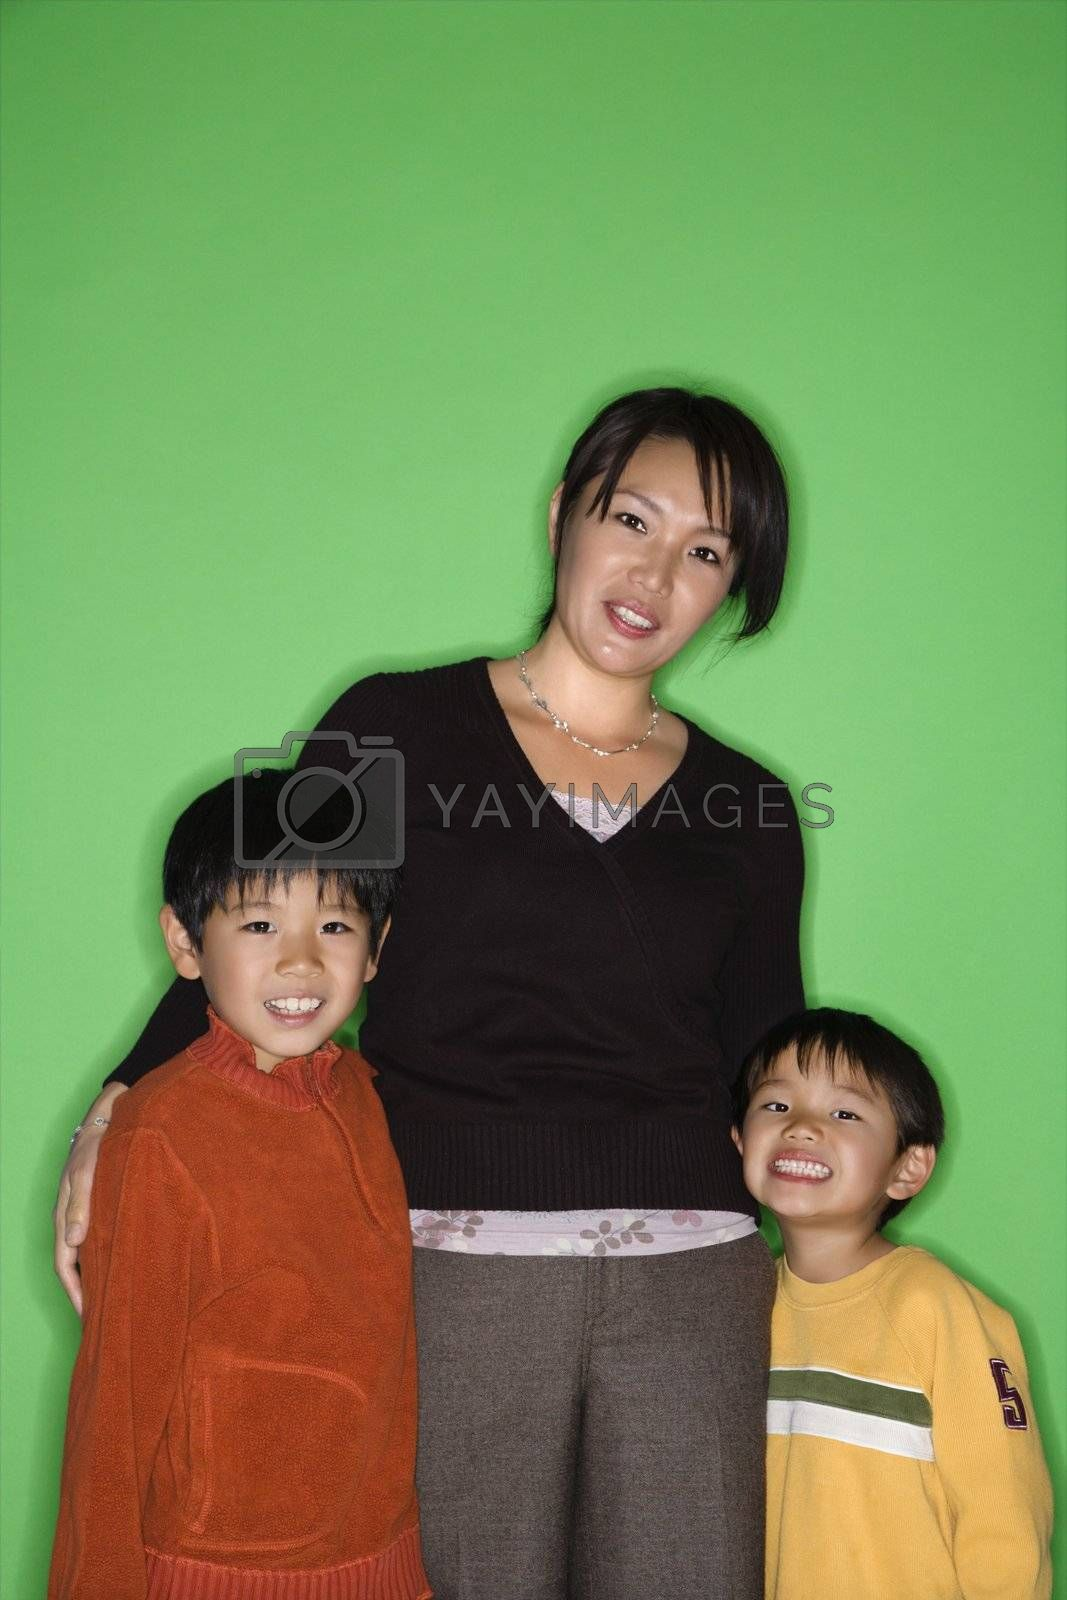 Portrait of Asian mother with two young boys smiling.